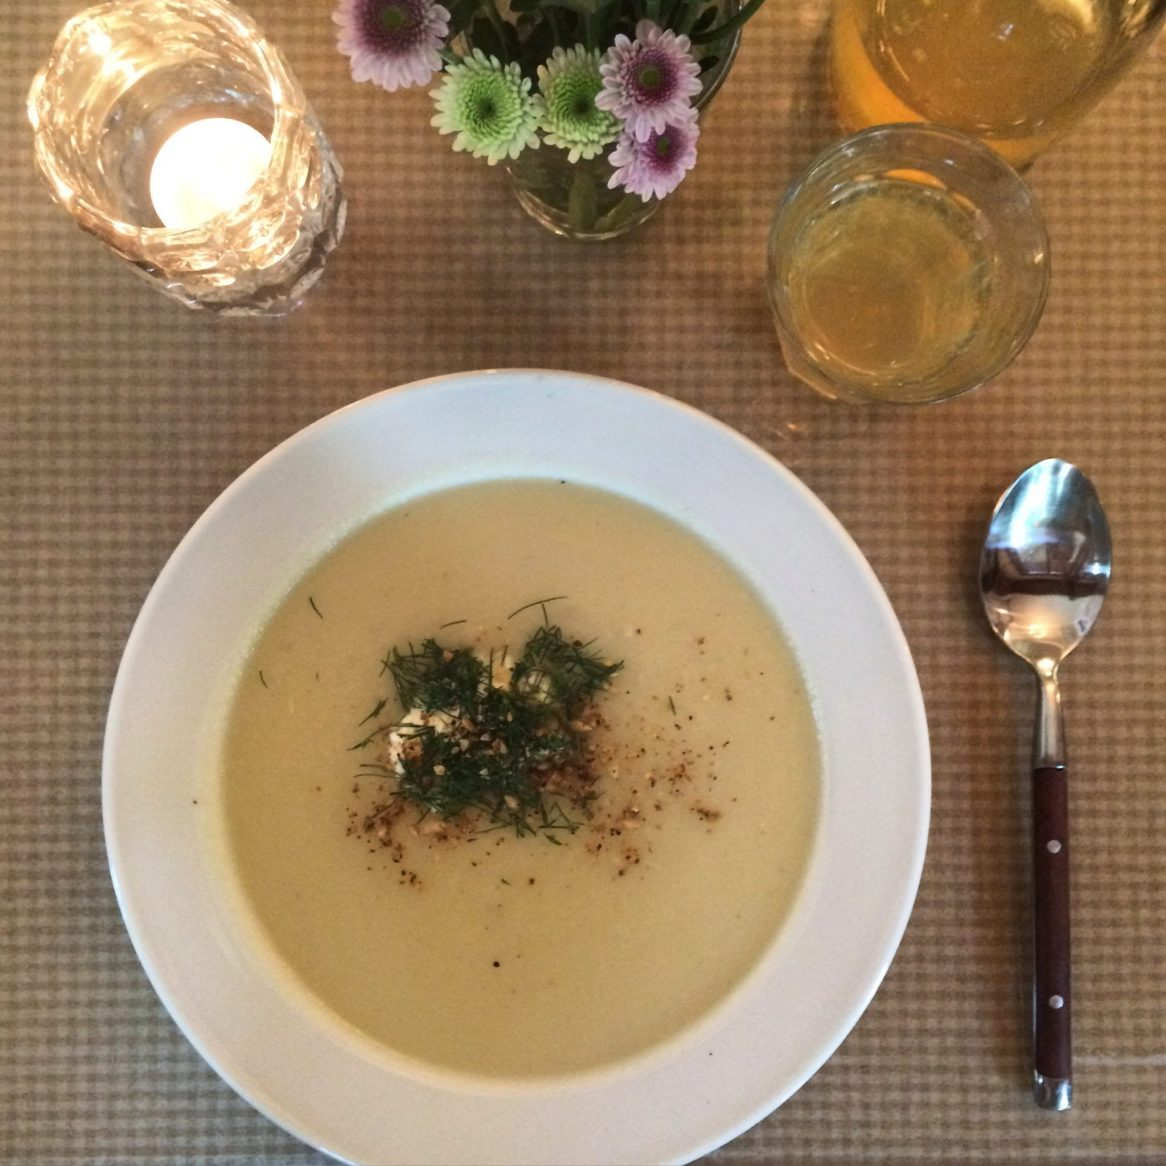 Bowl of kohlrabi soup